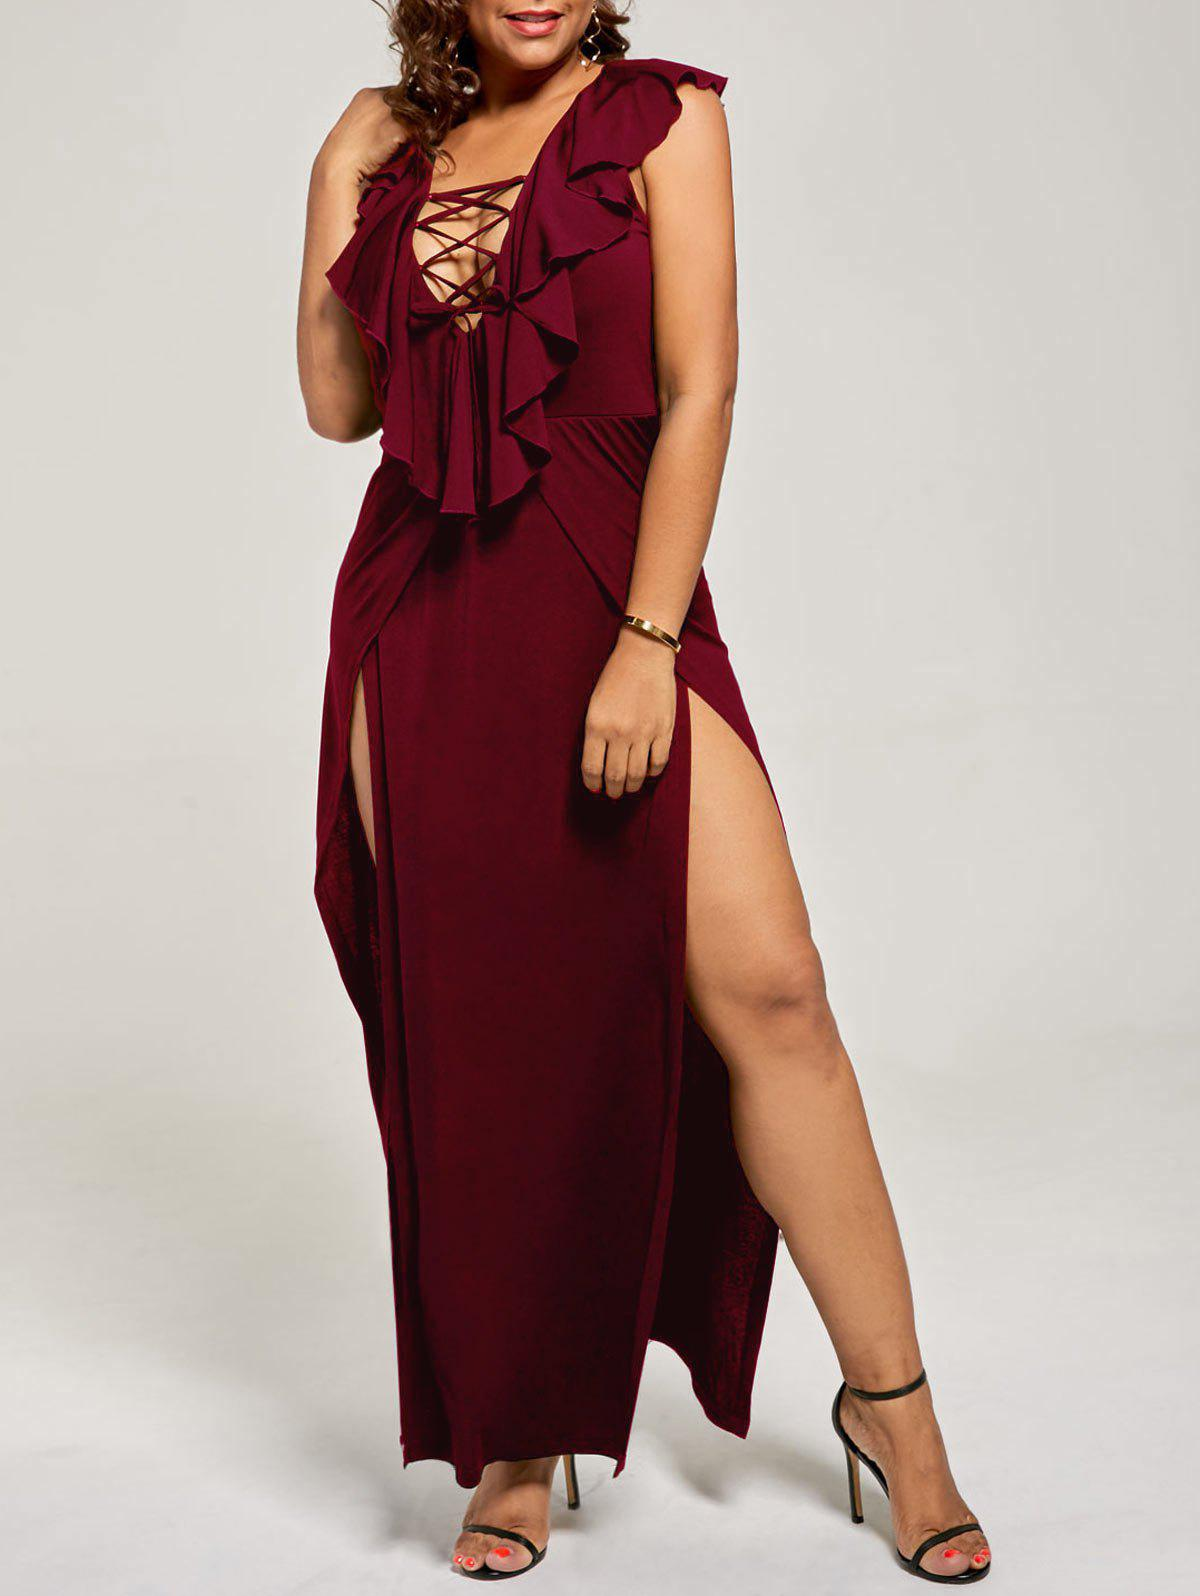 Plus Size Flounce Lace Up Maxi High Slit DressWOMEN<br><br>Size: 3XL; Color: WINE RED; Style: Casual; Material: Polyester,Spandex; Silhouette: A-Line; Dresses Length: Floor-Length; Neckline: Plunging Neck; Sleeve Length: Sleeveless; Pattern Type: Solid; With Belt: No; Season: Fall,Spring,Summer; Weight: 0.3500kg; Package Contents: 1 x Dress;